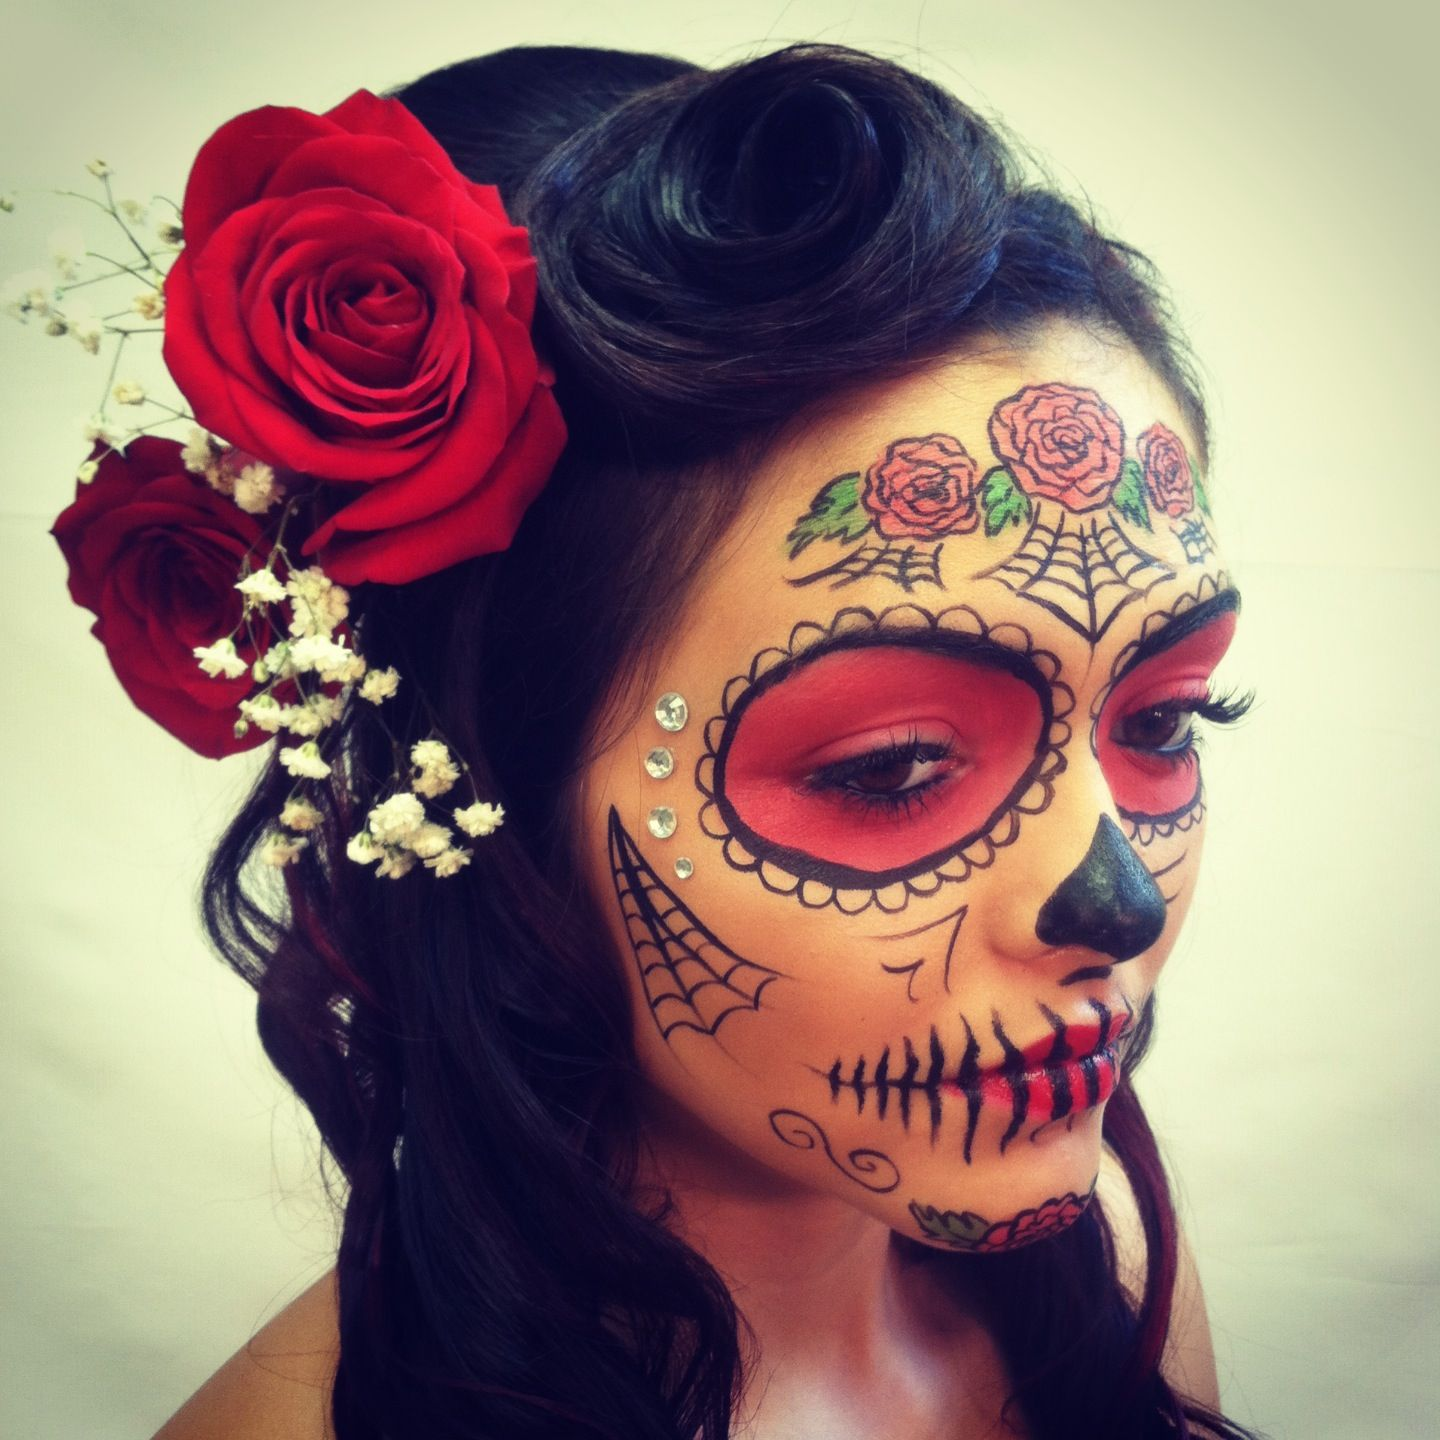 Sugar Skull Makeup Love The Flowers And Webs Goes Good With Hairstyle Too Skull Makeup Sugar Skull Makeup Sugar Skull Art